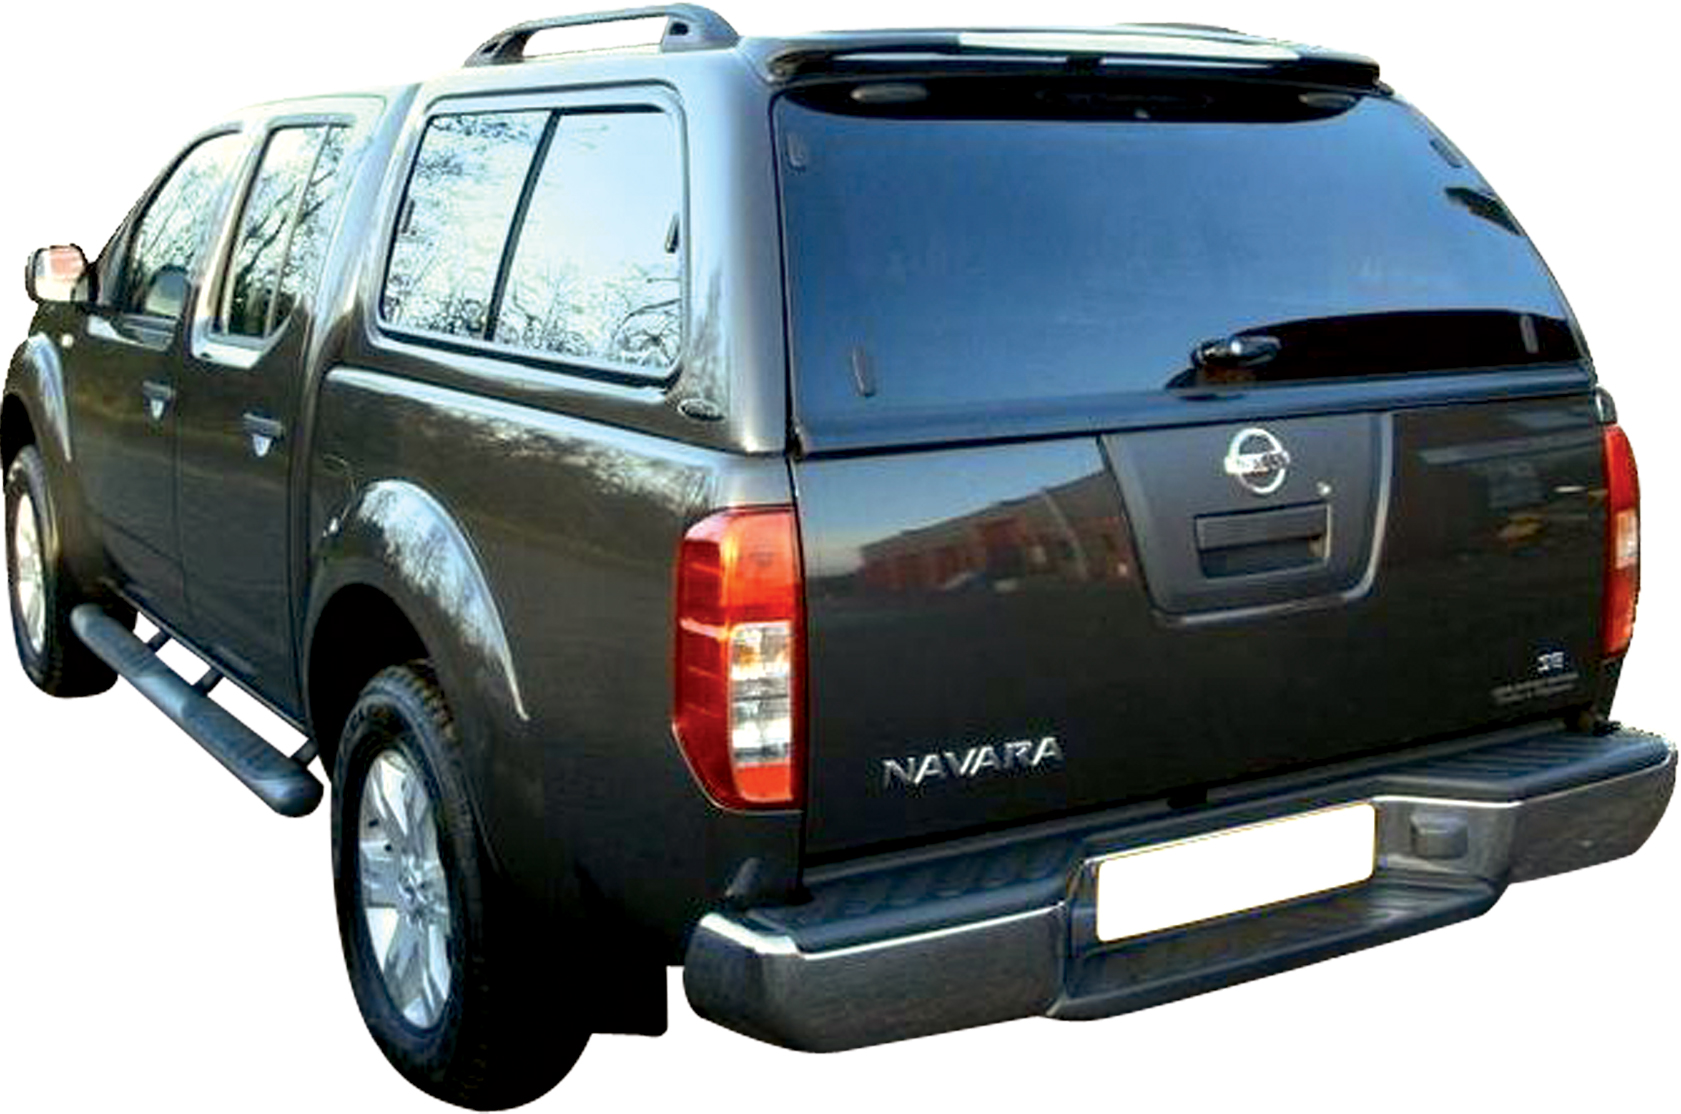 hard top carryboy nissan navara king cab 05 avec vitres. Black Bedroom Furniture Sets. Home Design Ideas